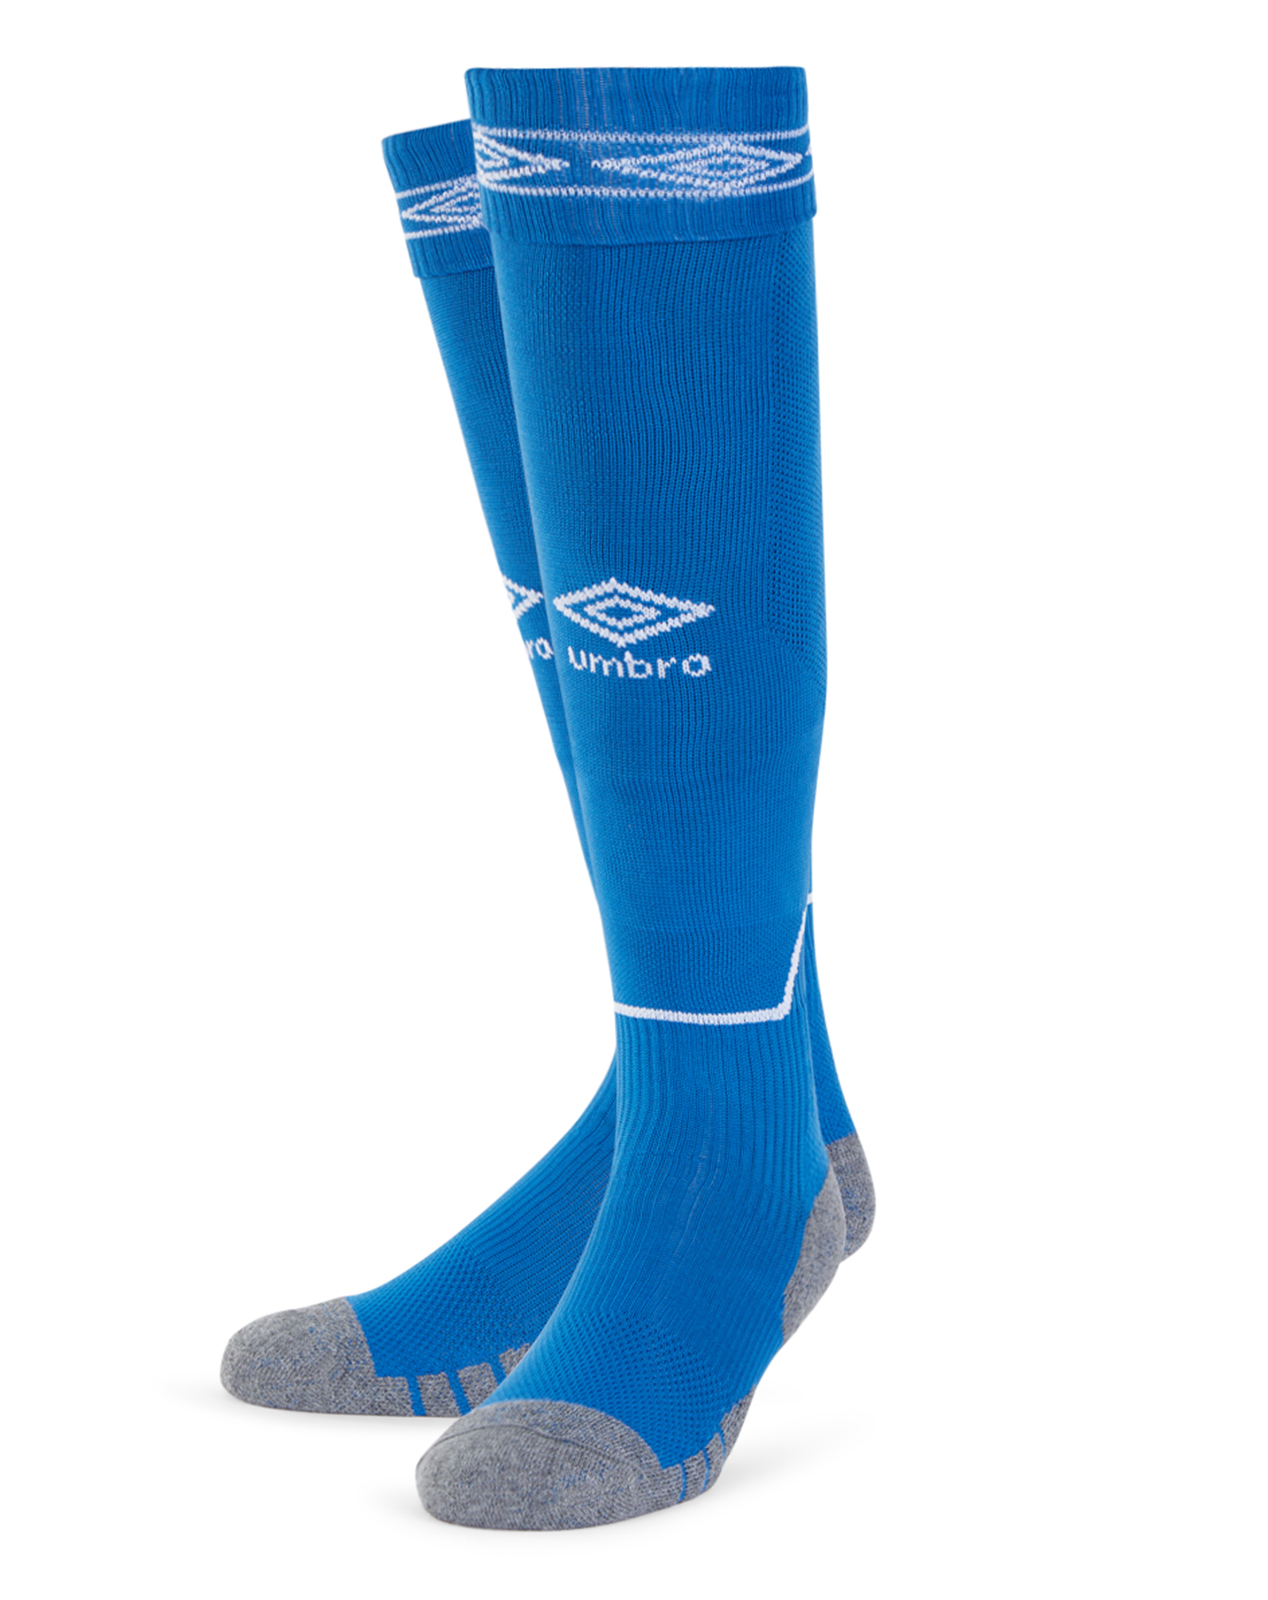 Umbro Diamond Top Socks in TW royal blue with white Diamond turnover design